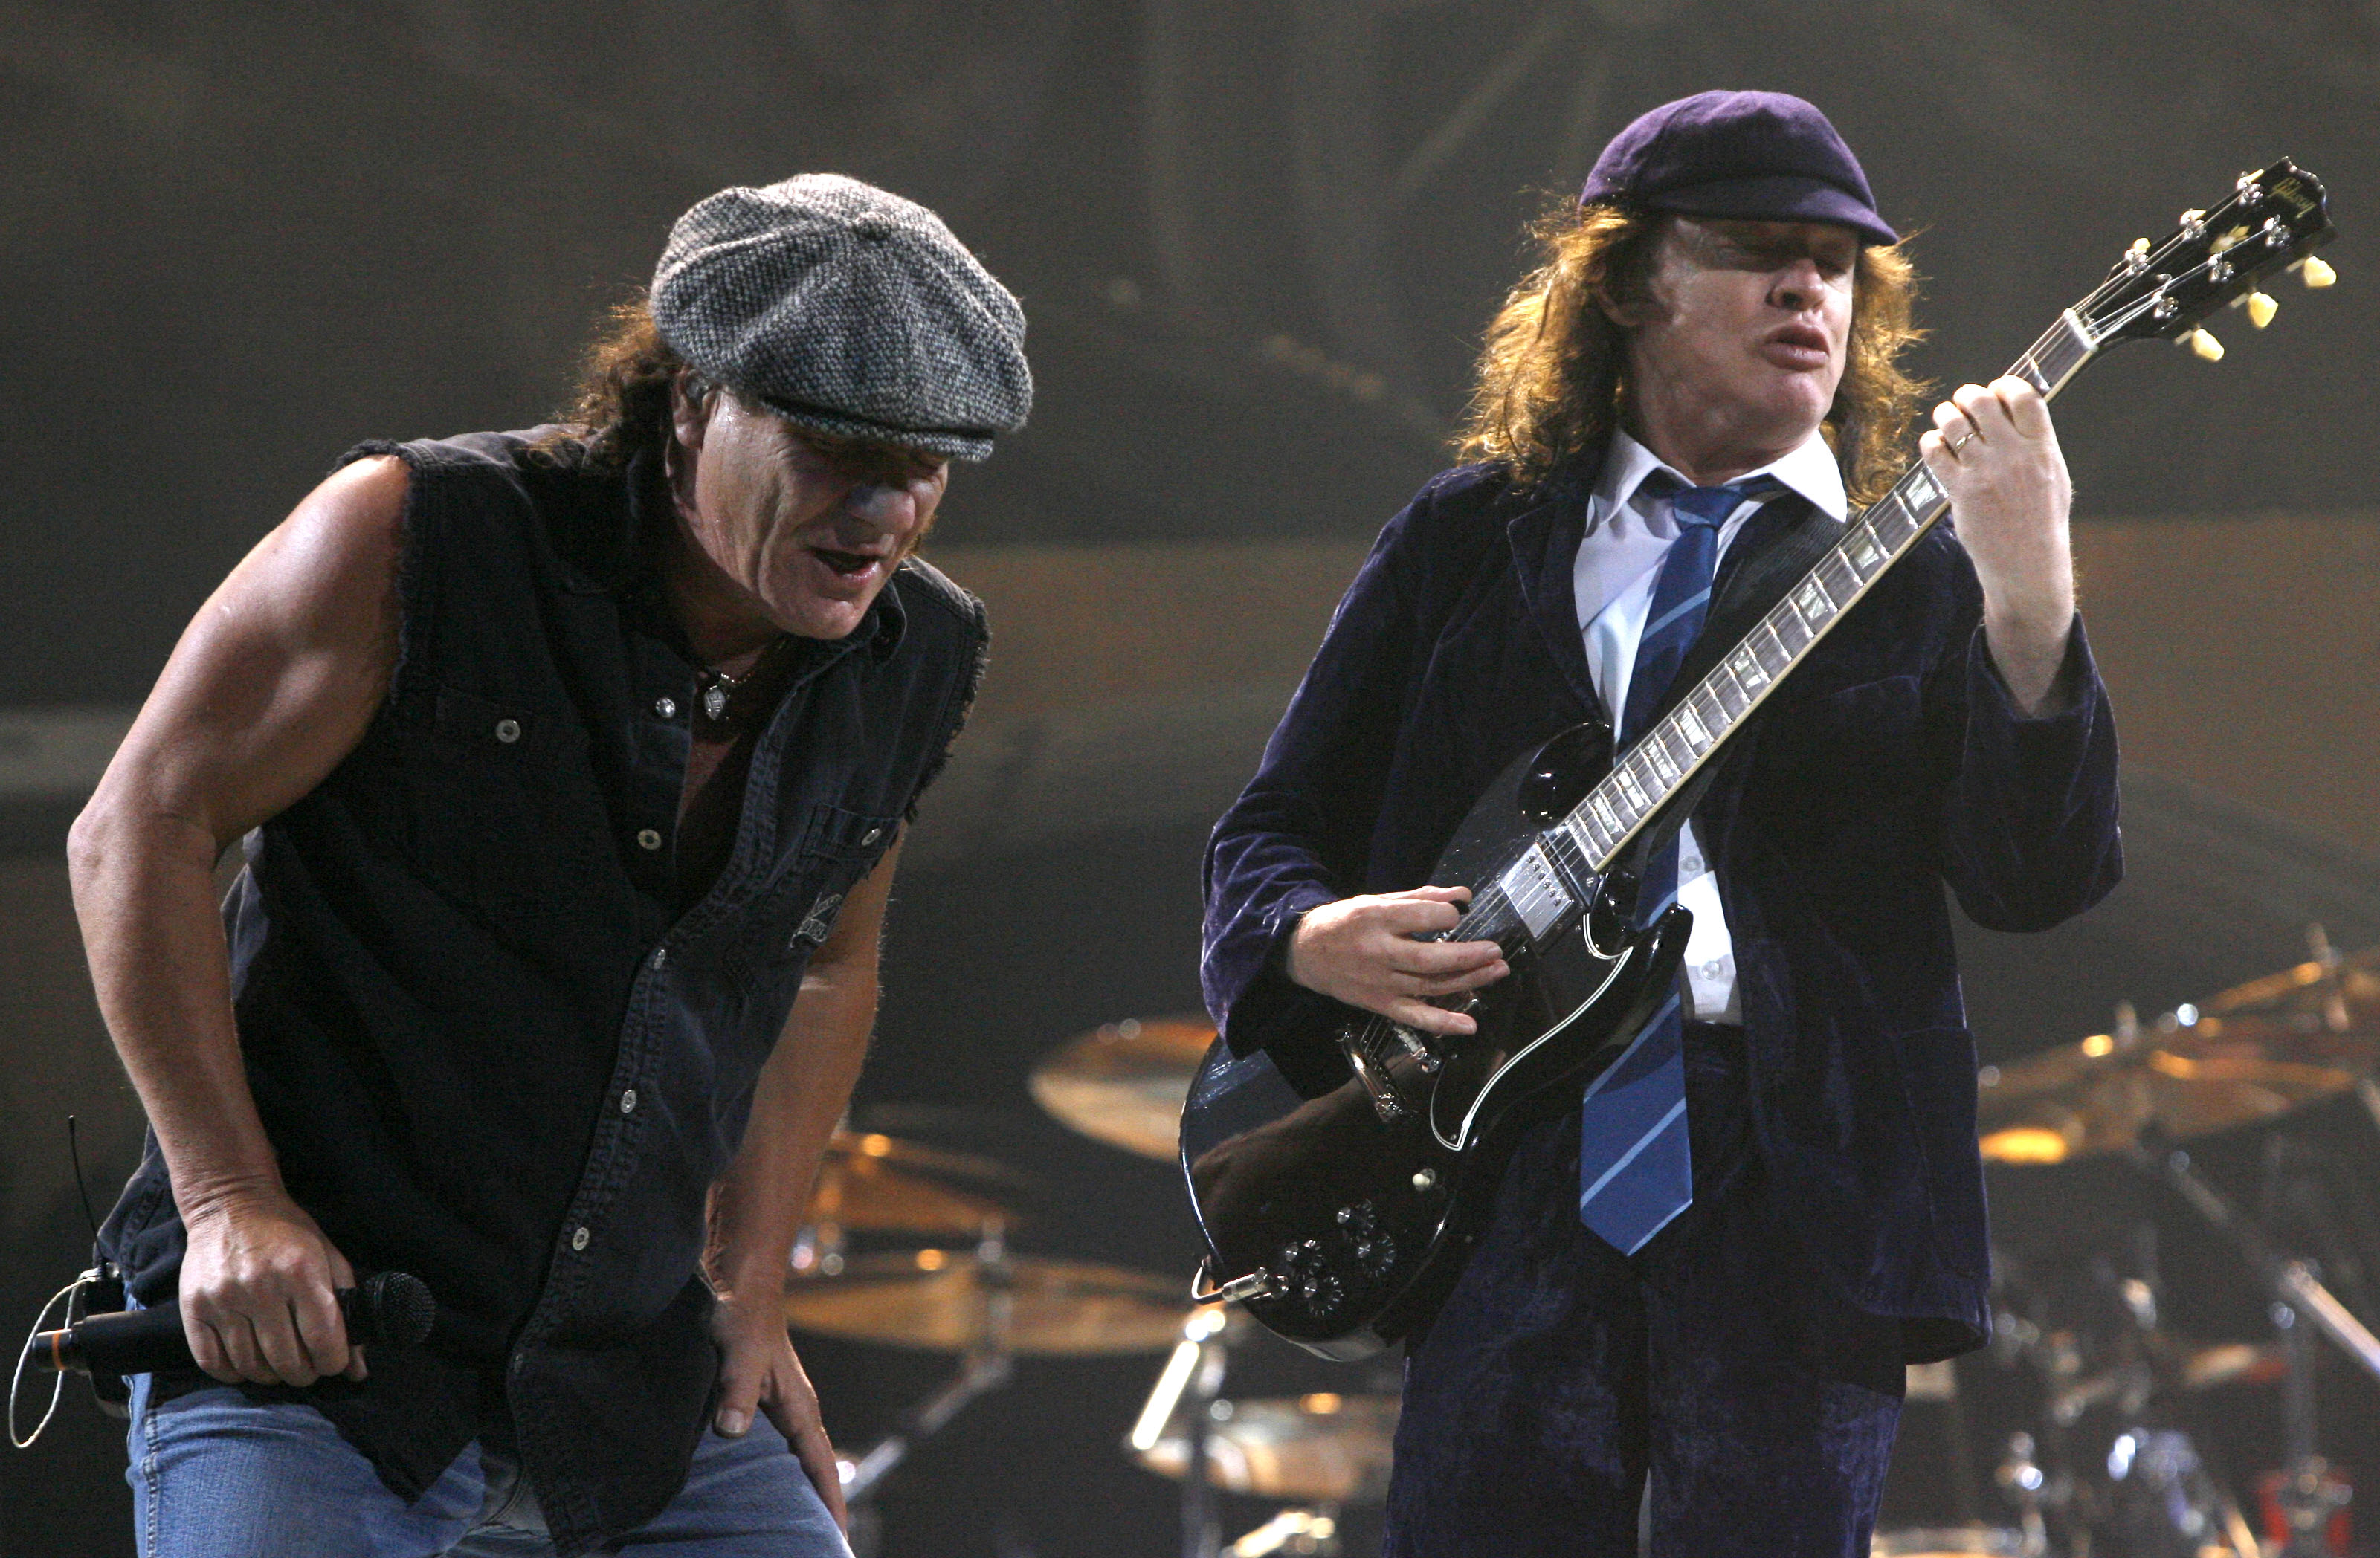 AC/DC's Brian Johnson, left, and Angus Young perform at the then-HSBC Arena on Oct. 18, 2009. (Robert Kirkham/Buffalo News)